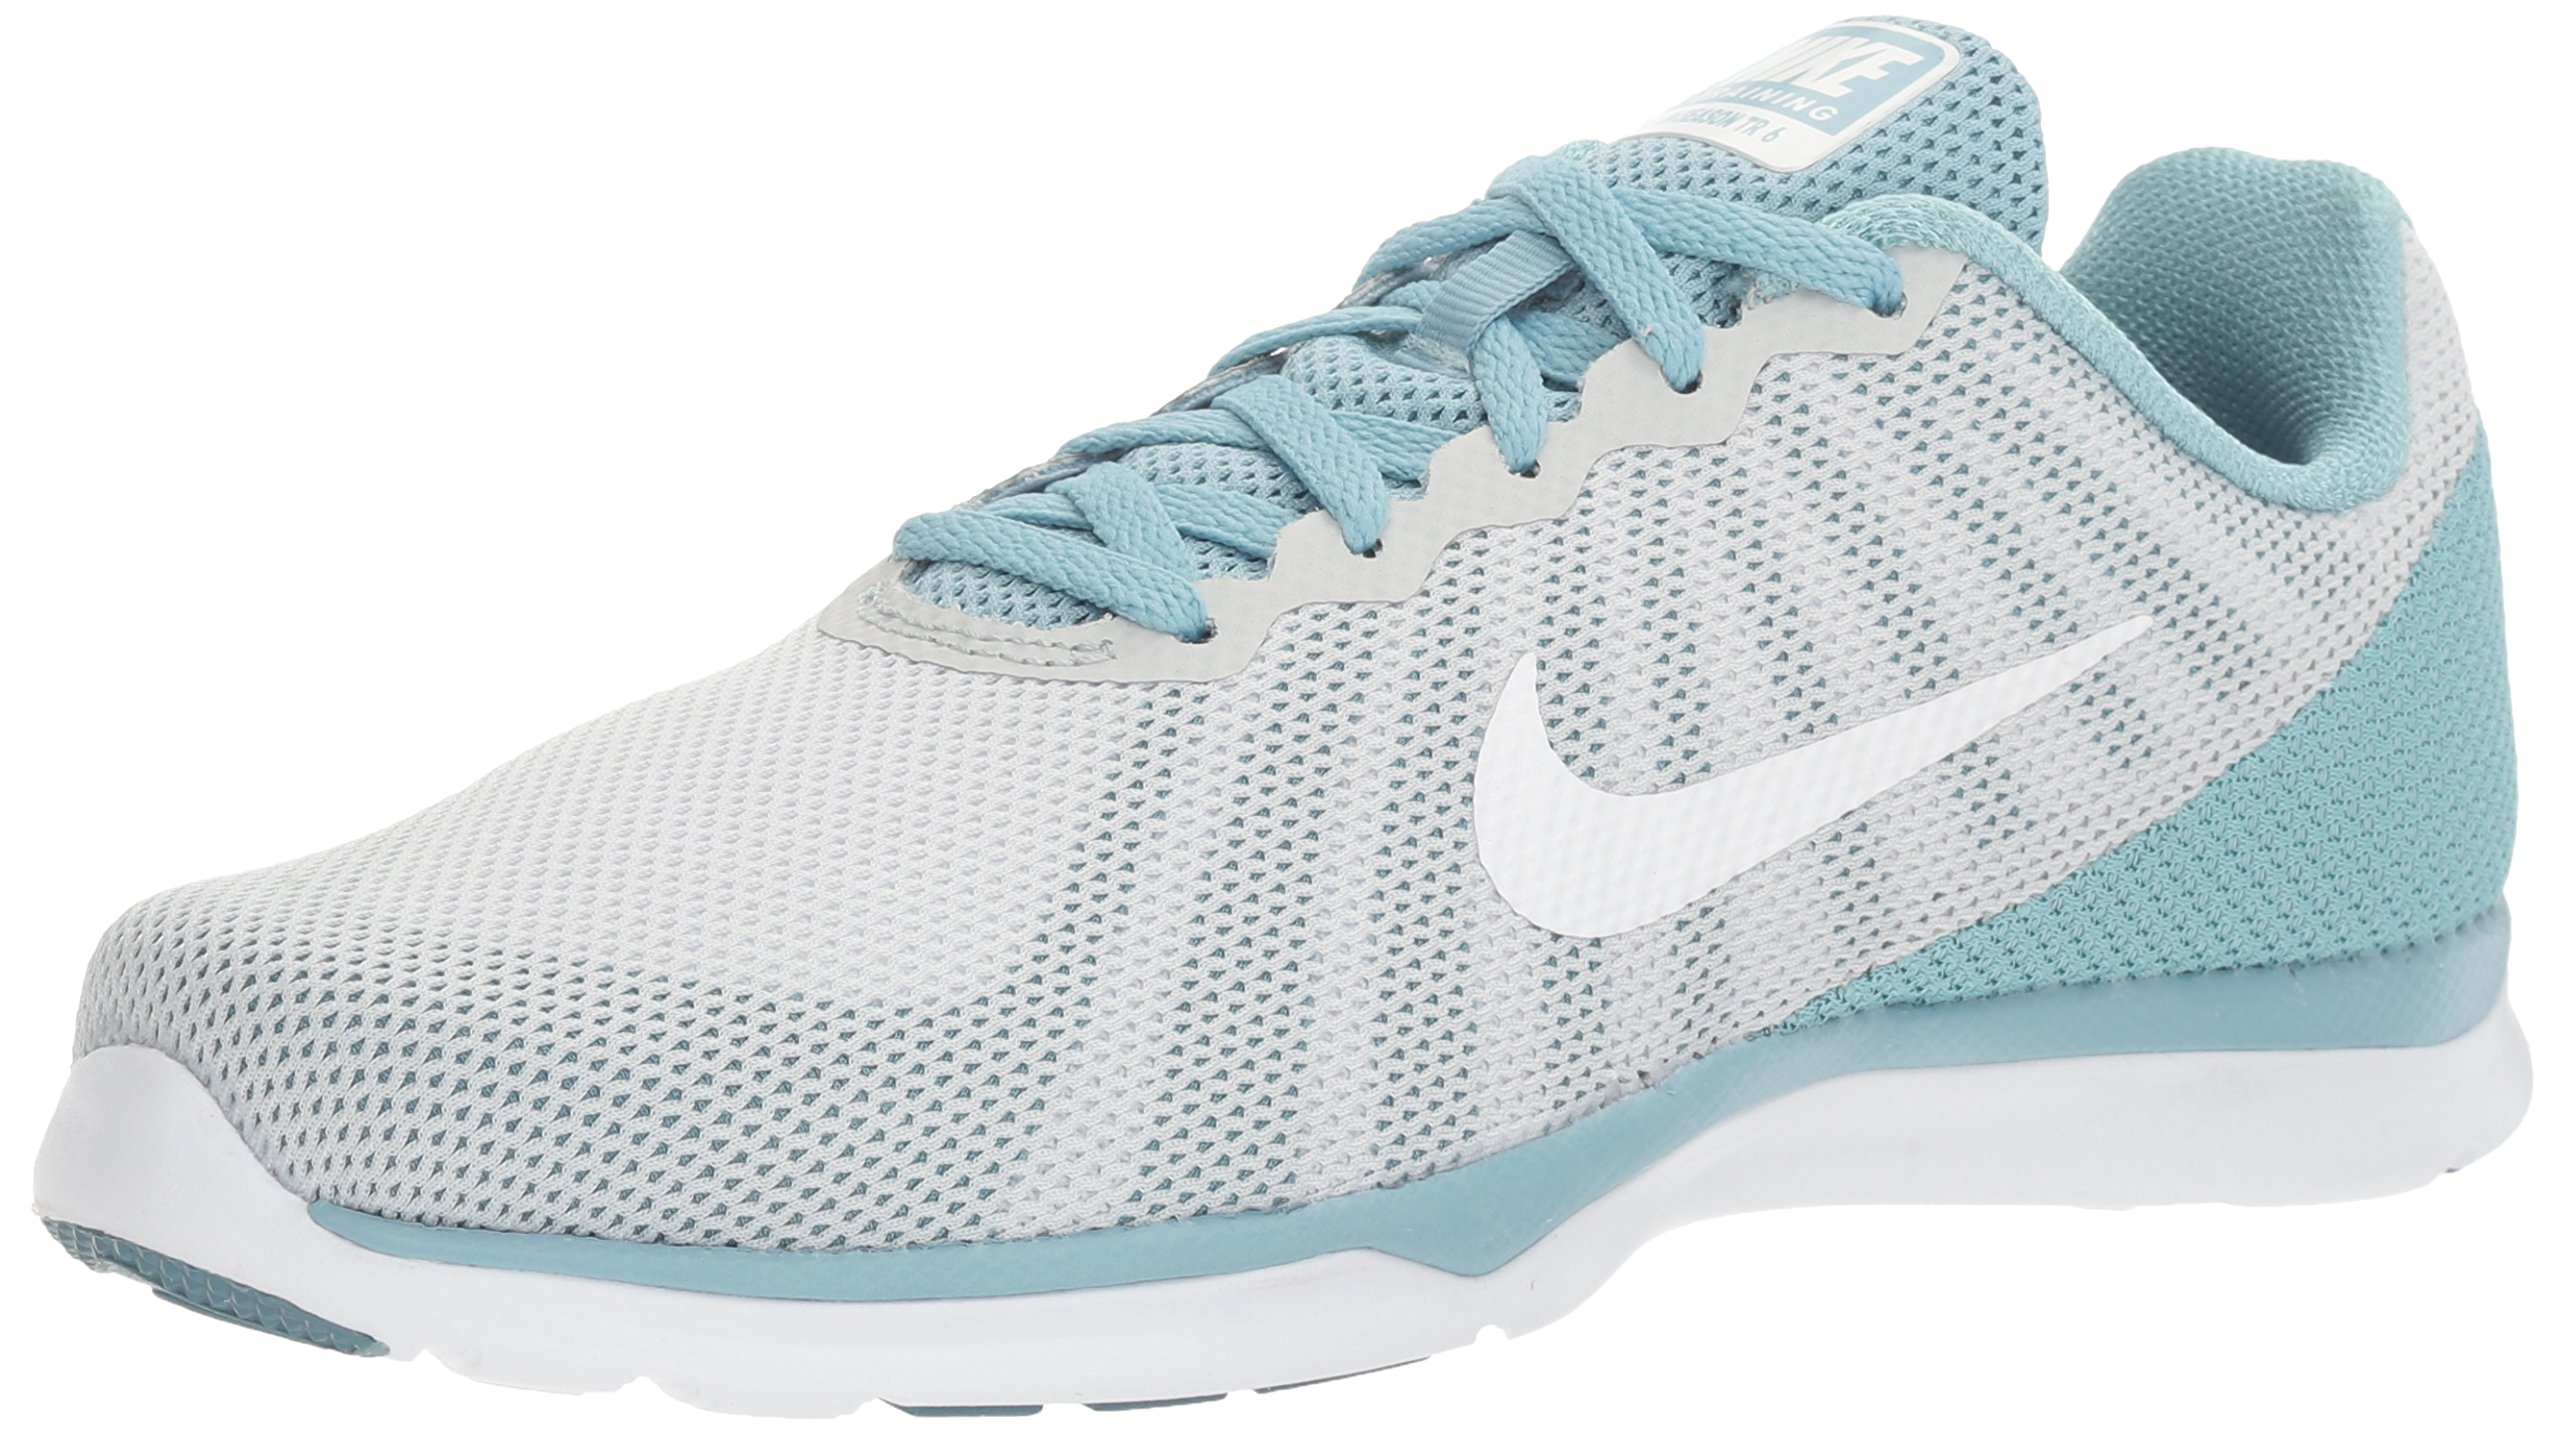 NIKE Women's in-Season TR 6 Cross Trainer, Pure Platinum/White/Mica Blue, 7 B US